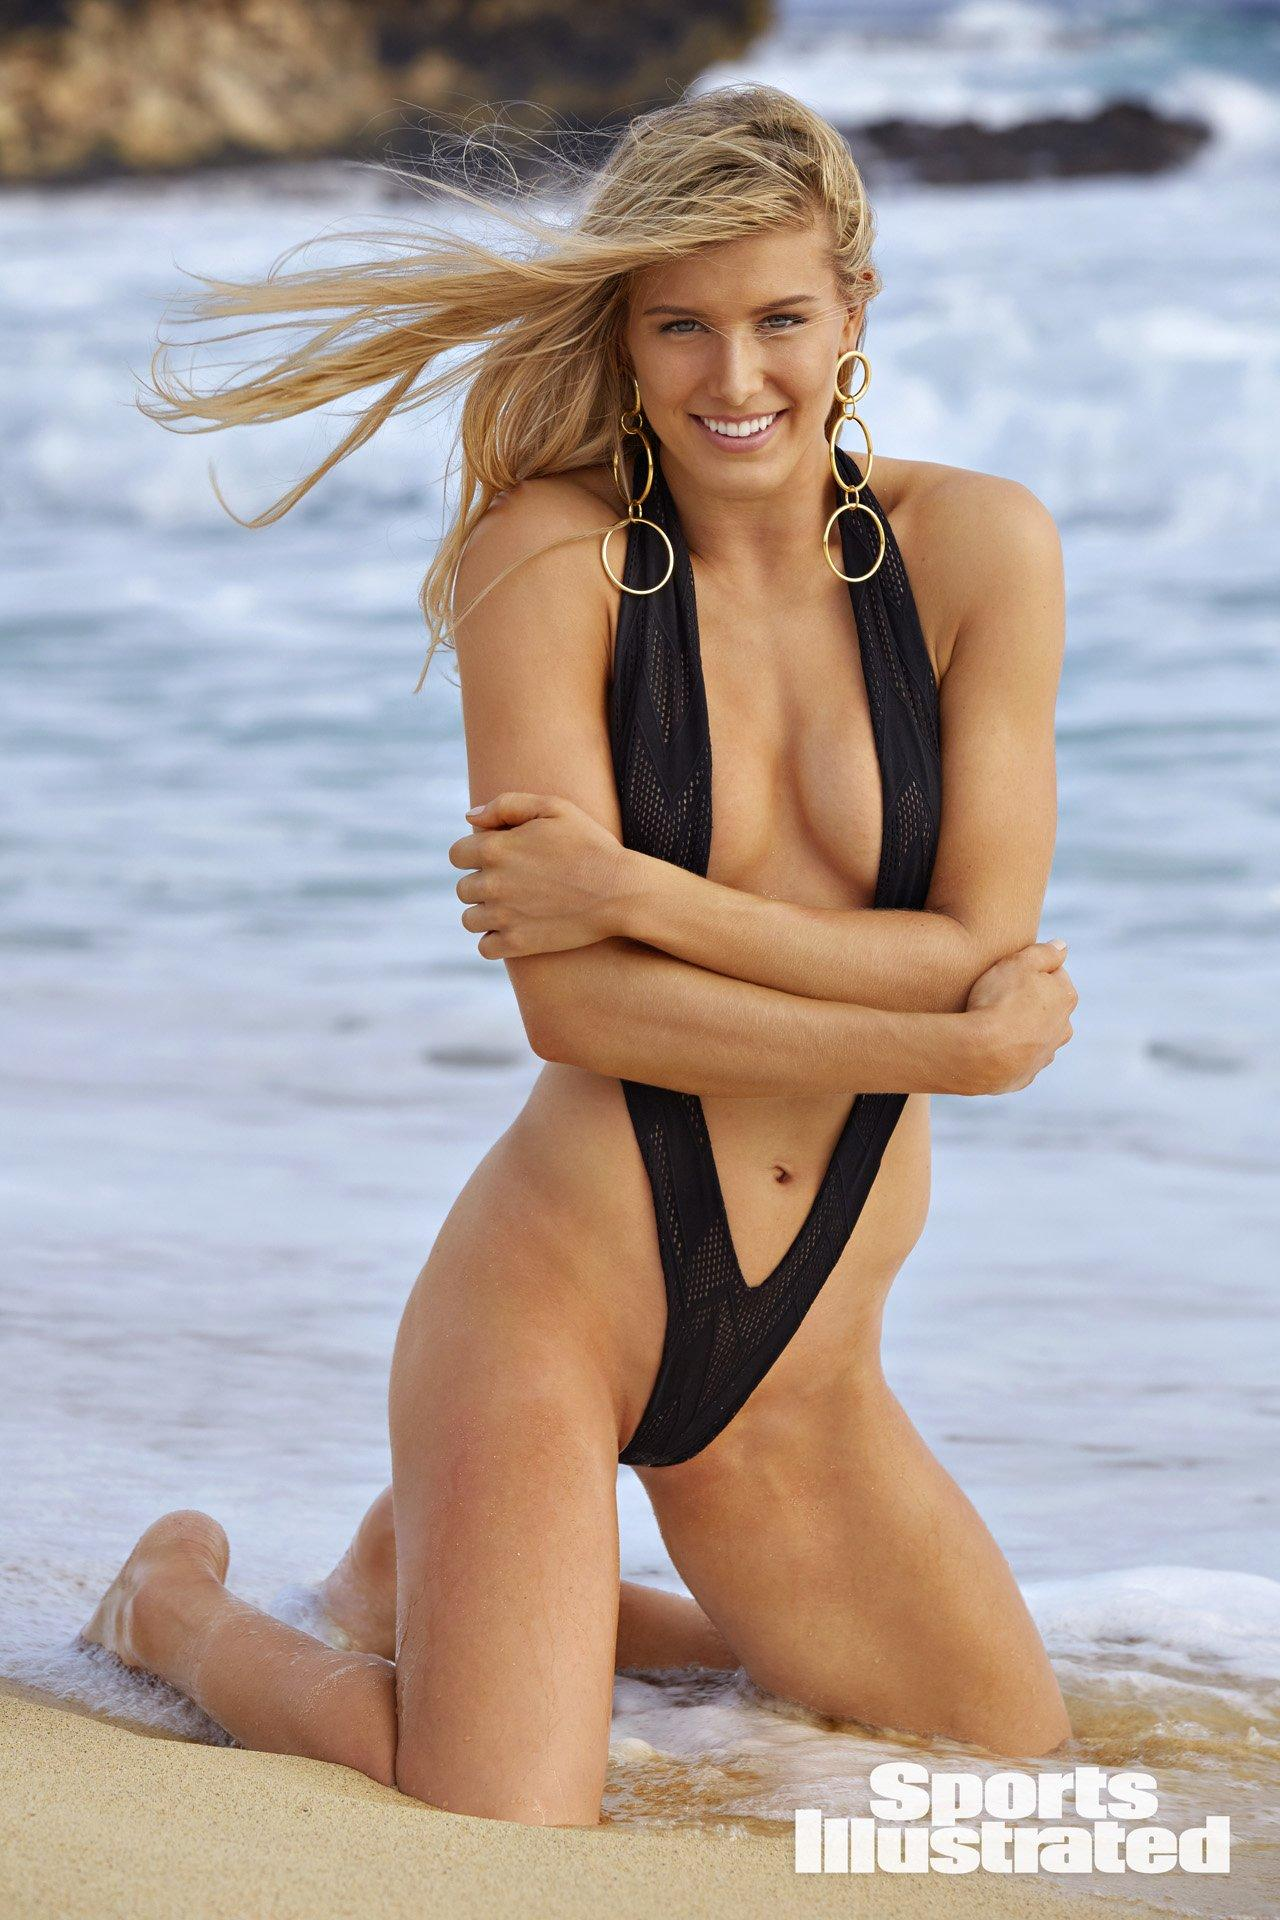 eugenie bouchard sports illustrated 2018